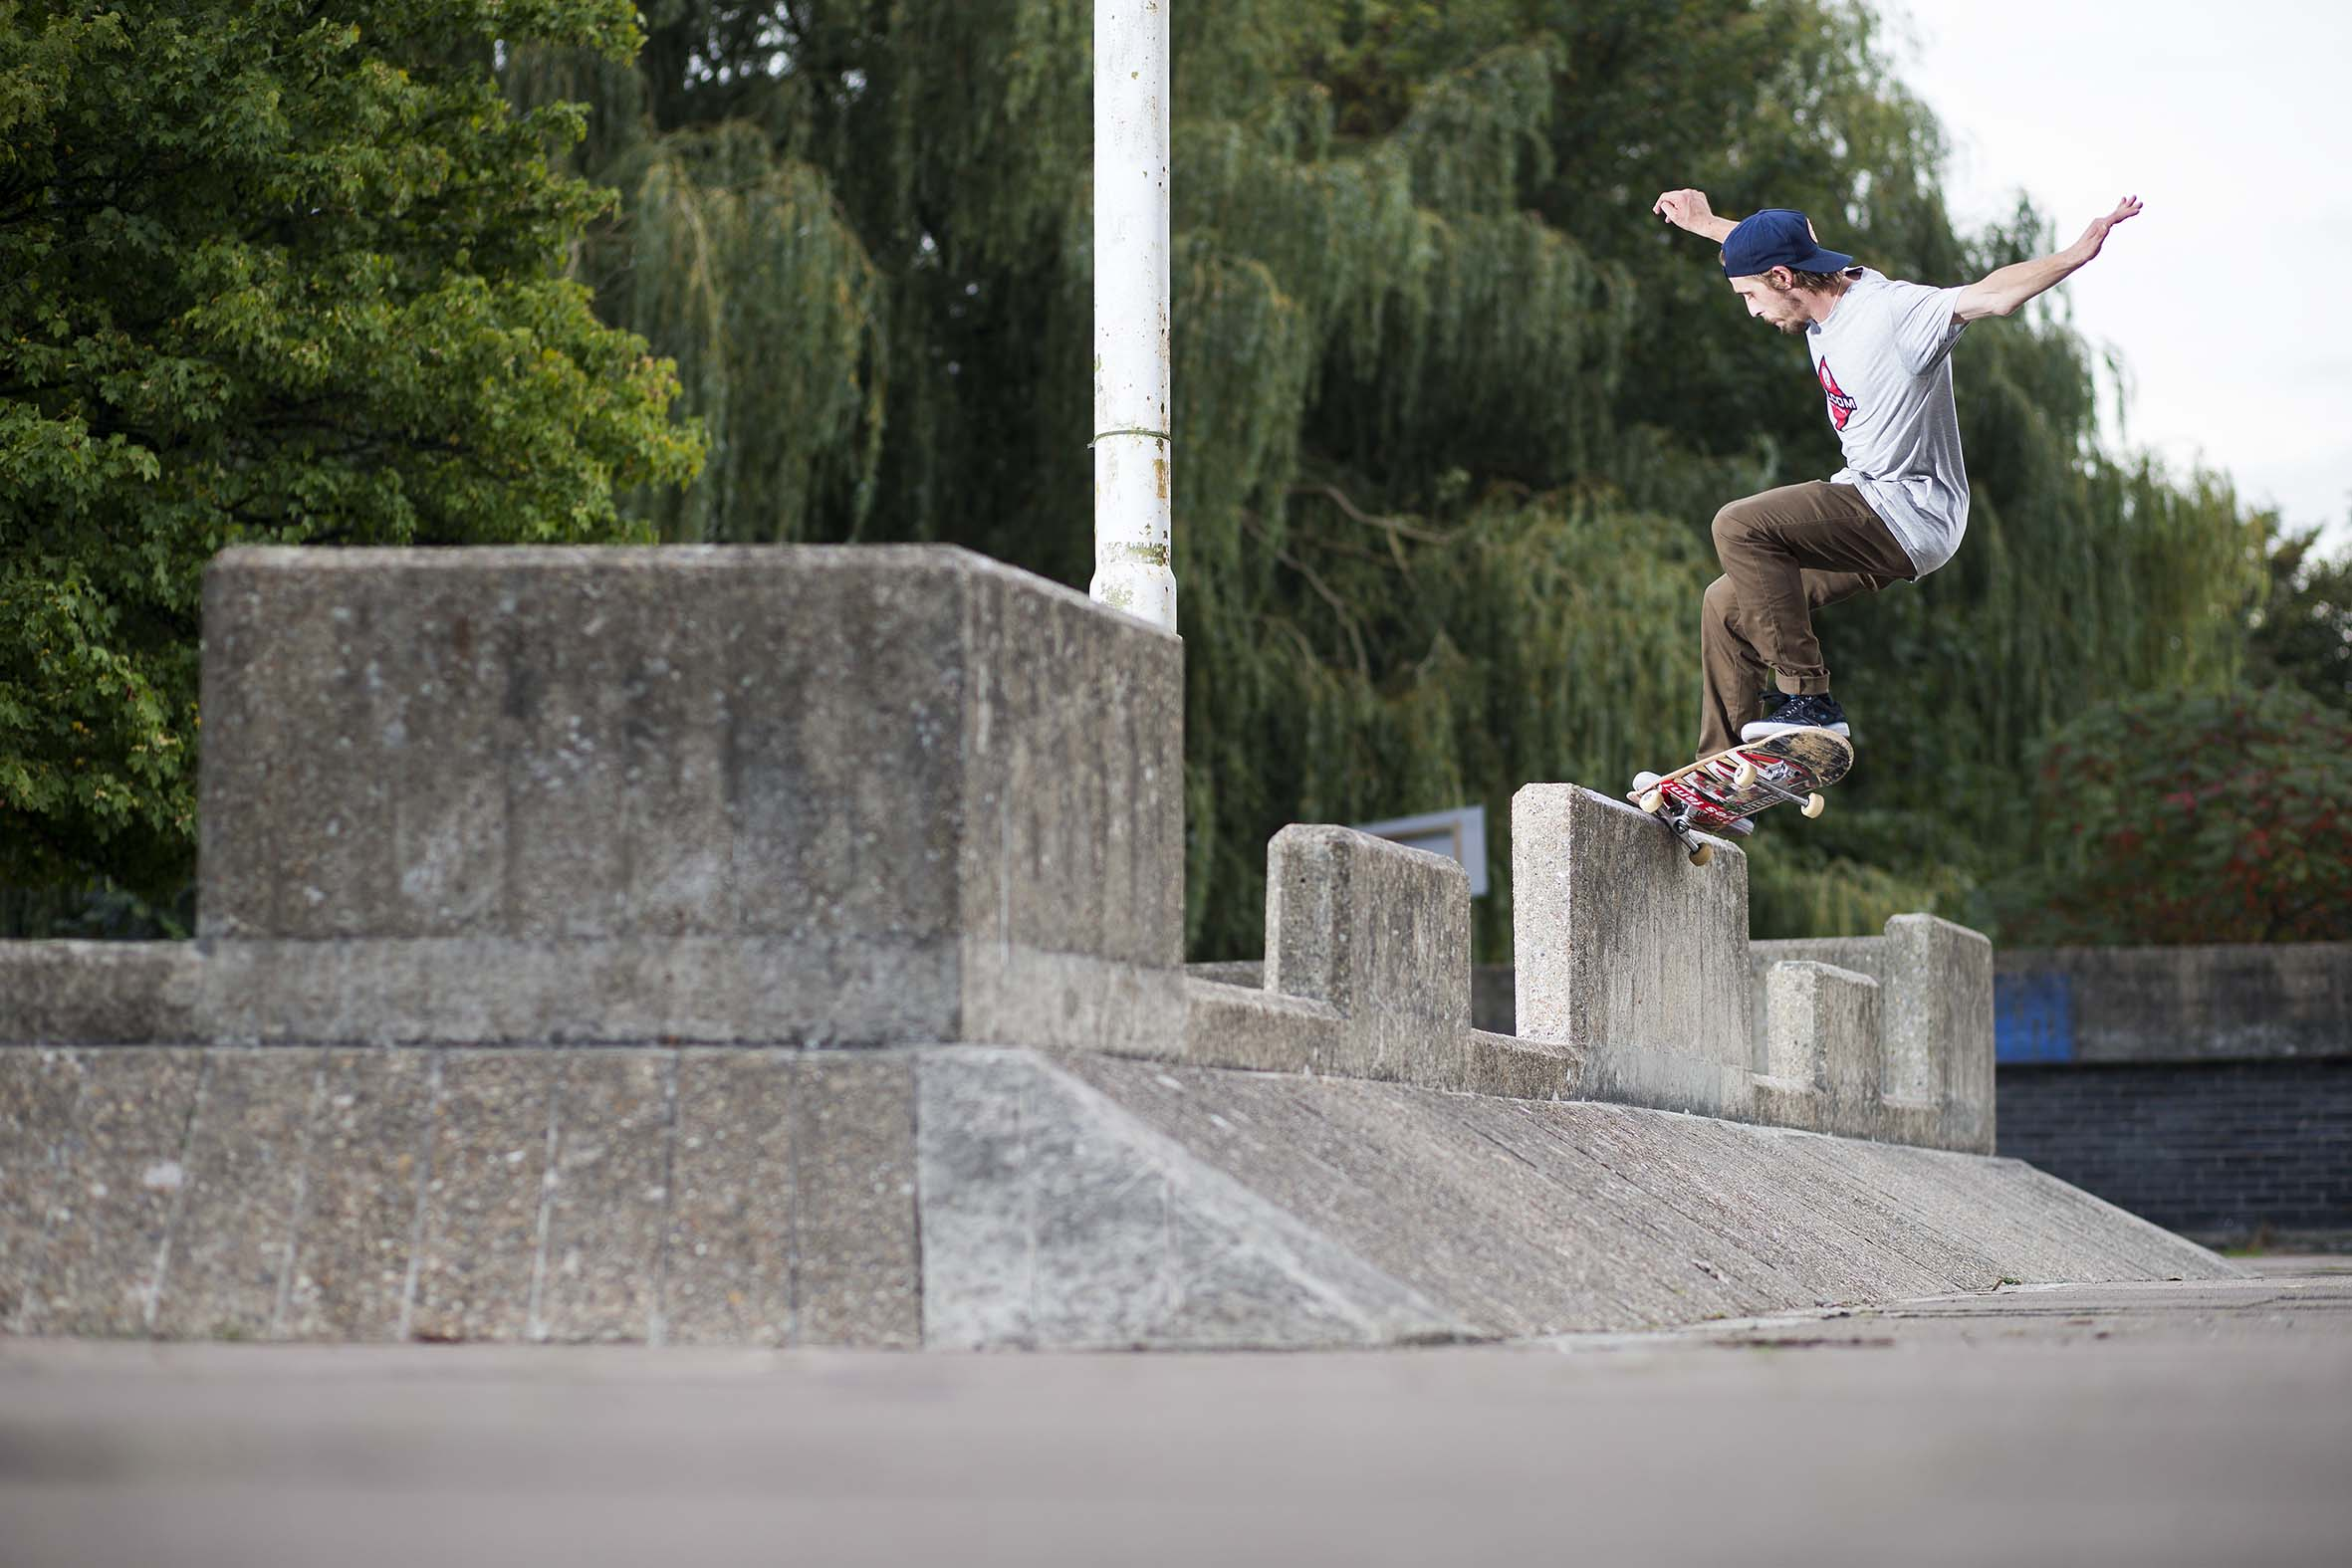 Harry Lintell - frontside crook to fakie